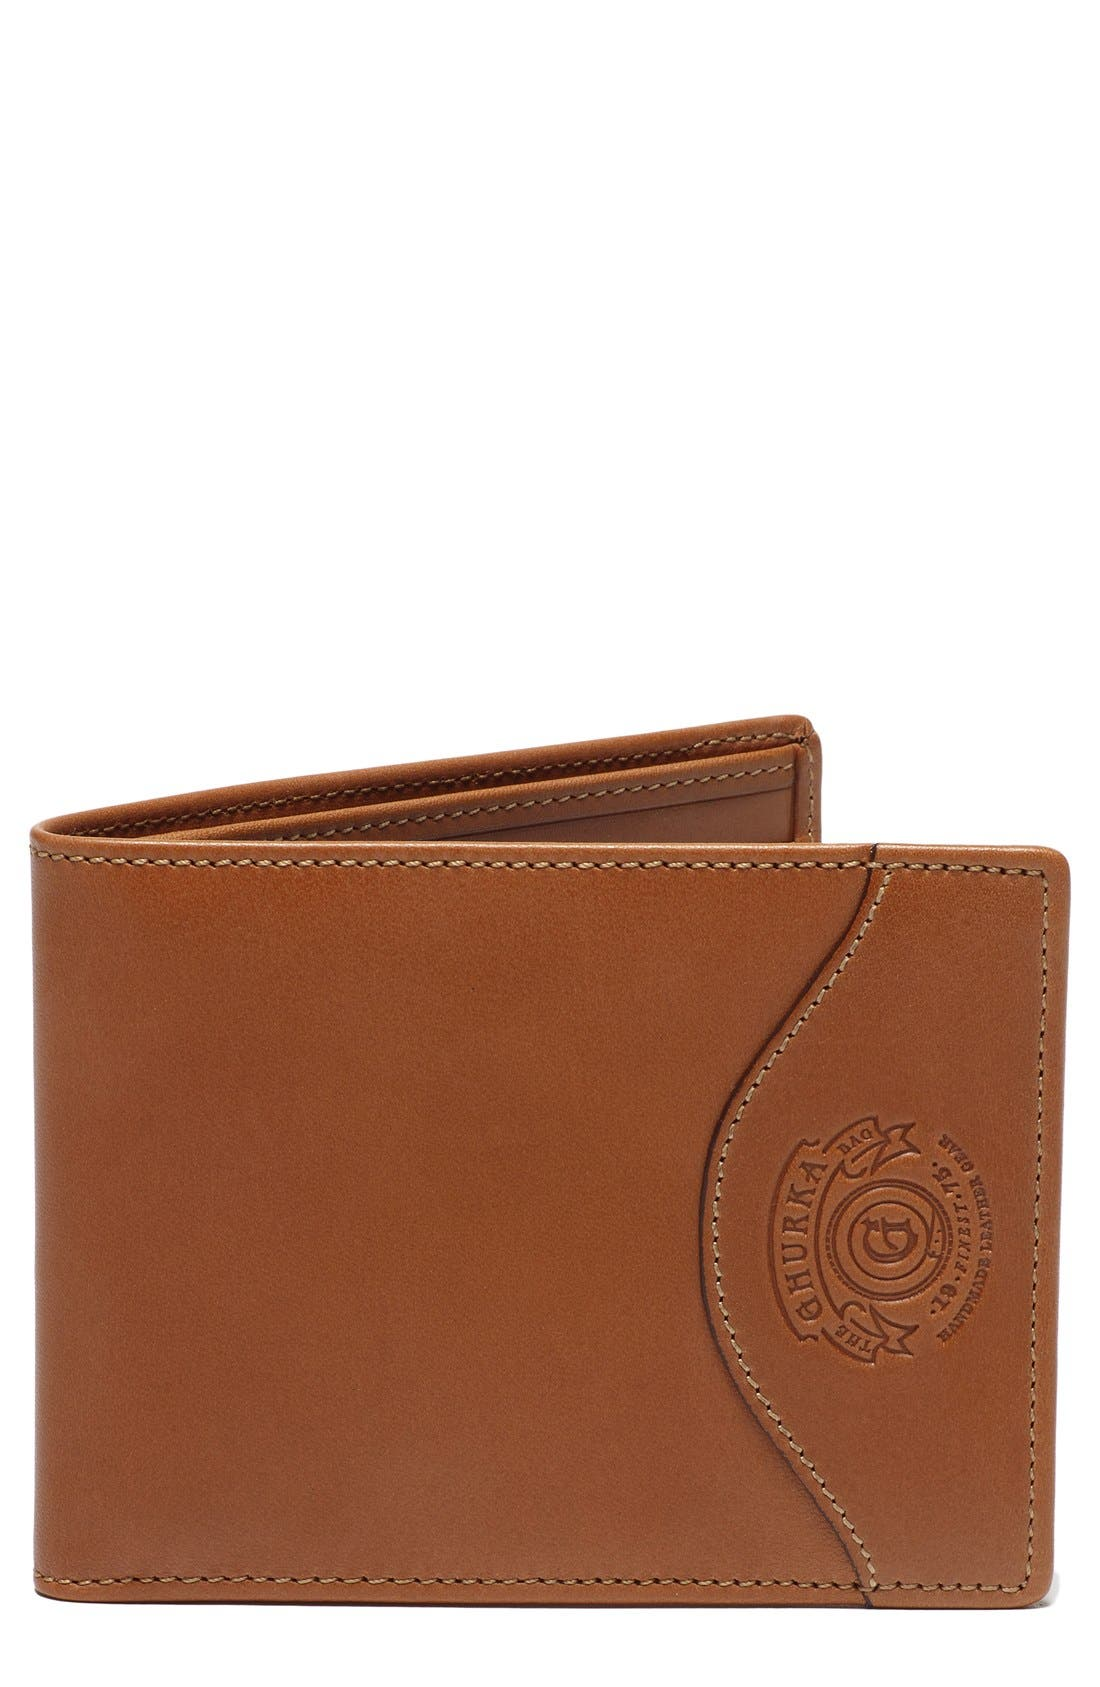 Alternate Image 1 Selected - Ghurka Leather Wallet with ID Case